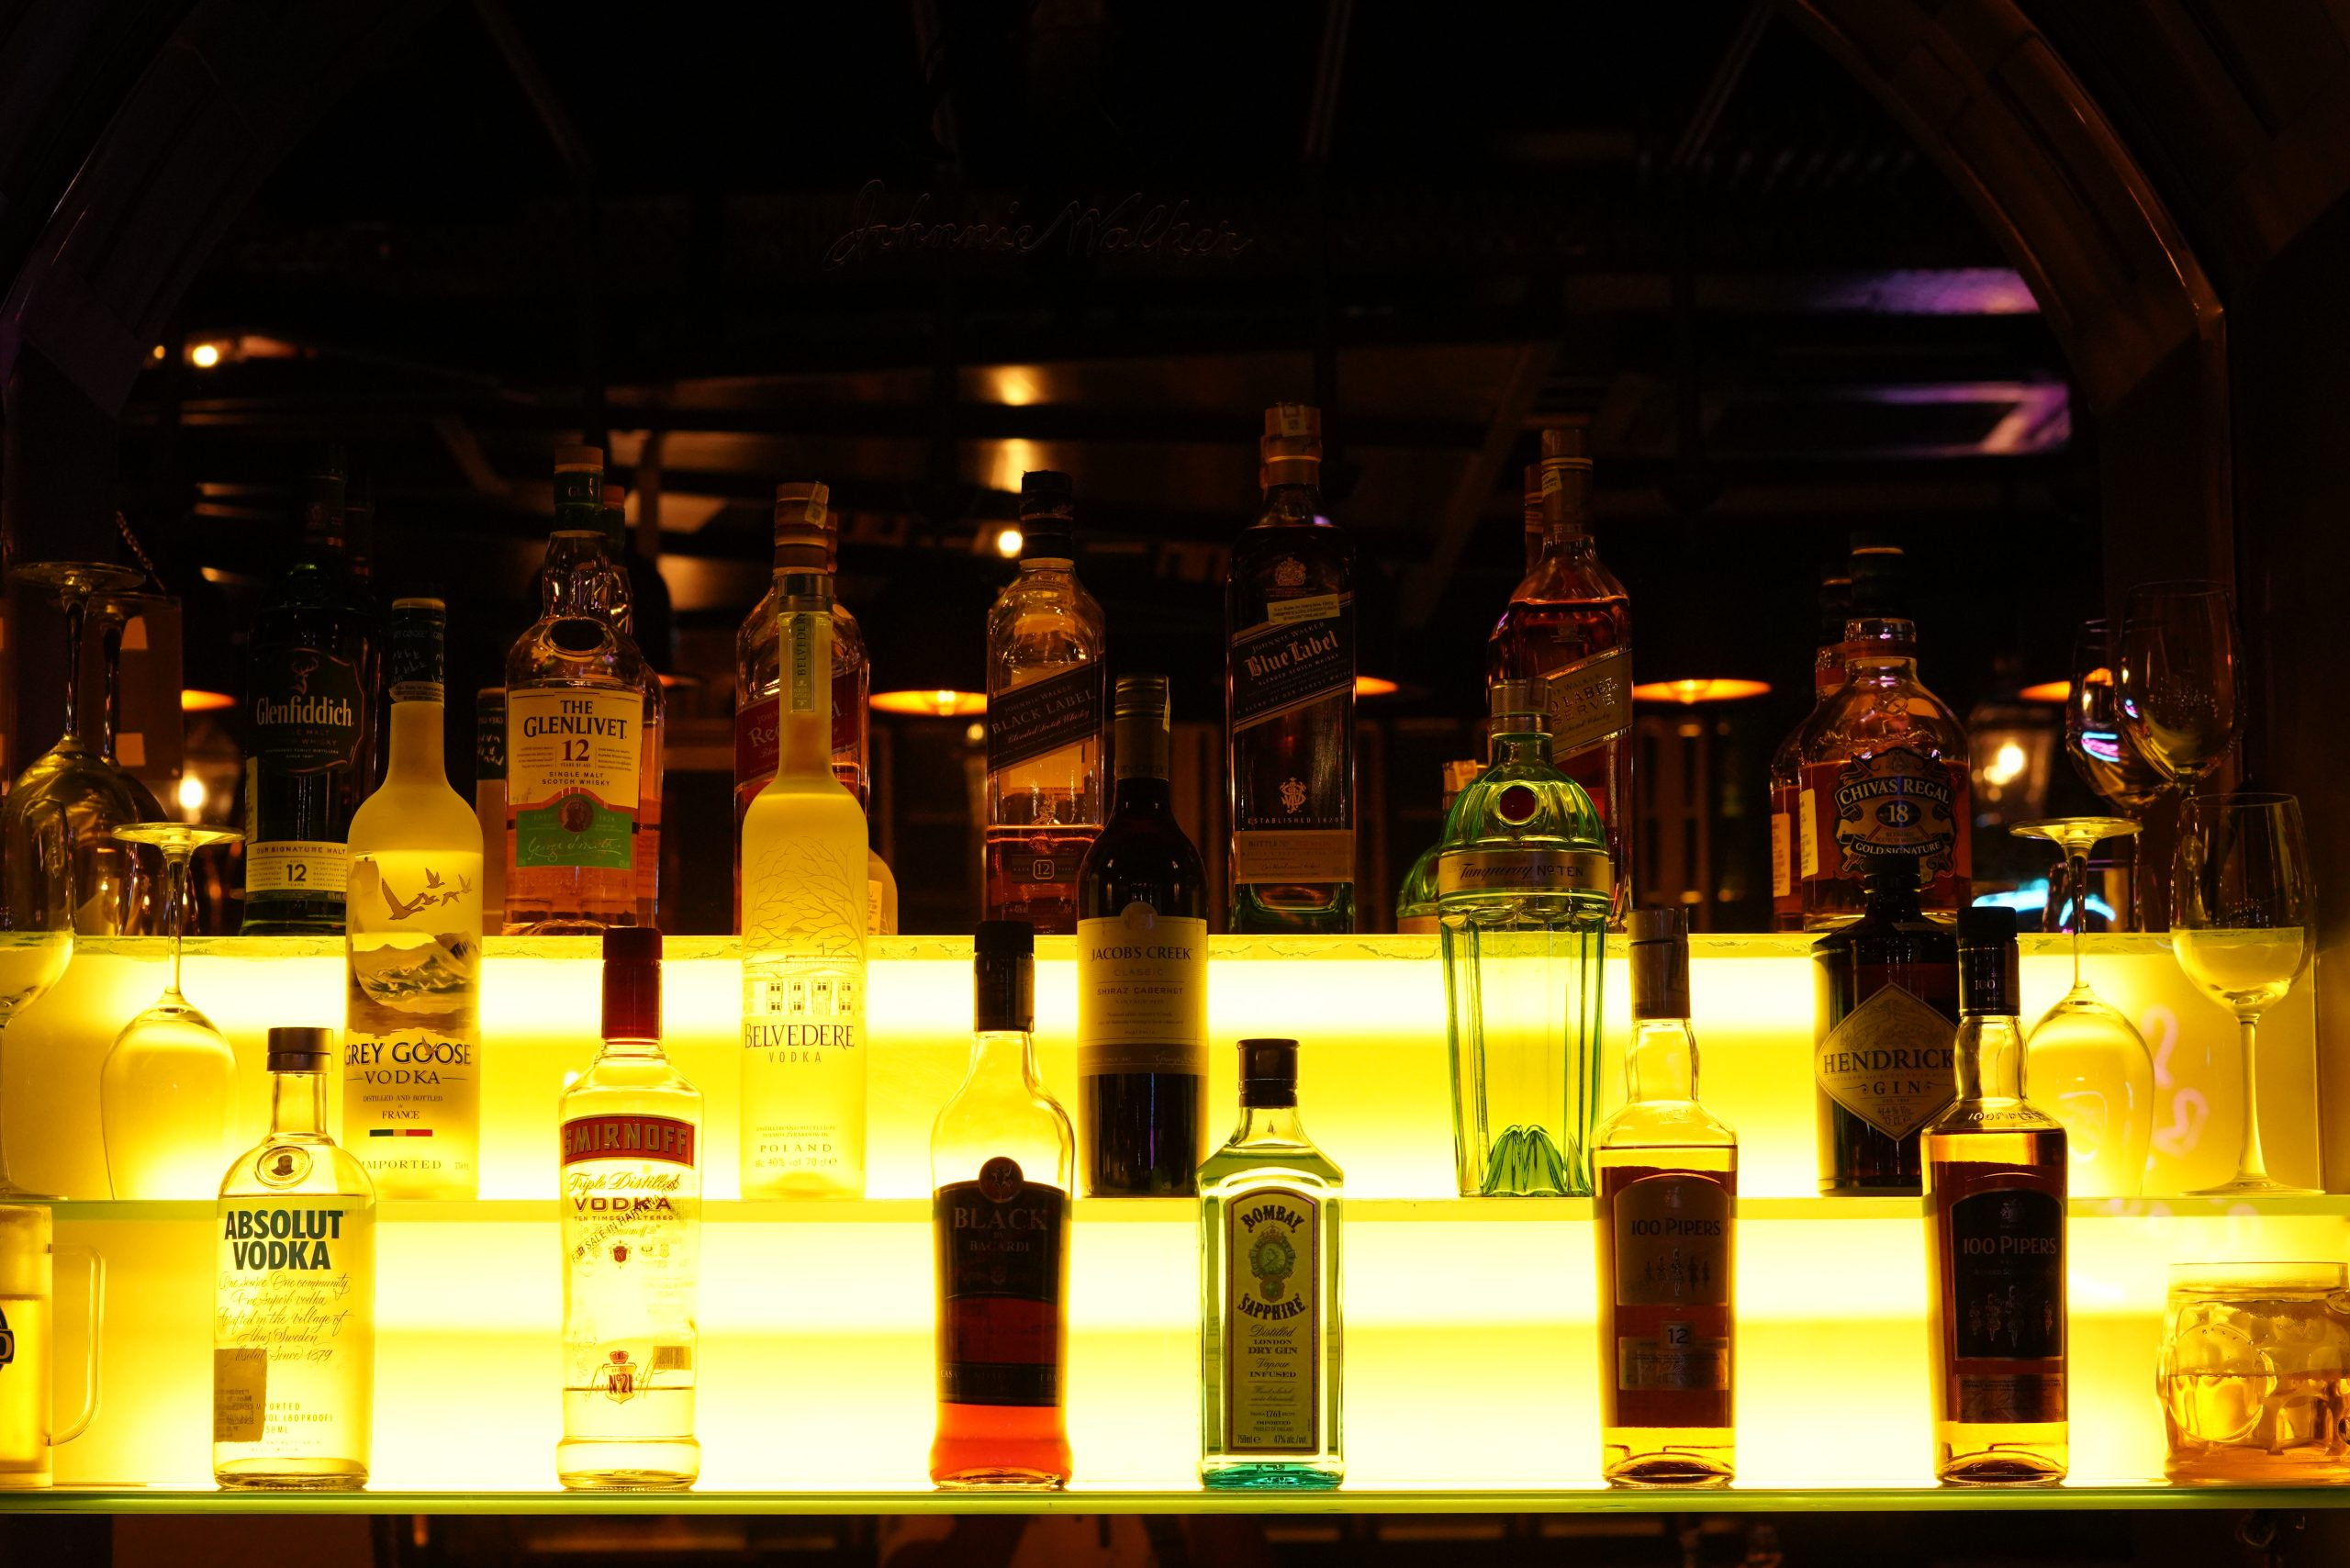 Liquor Bottles in a Bar